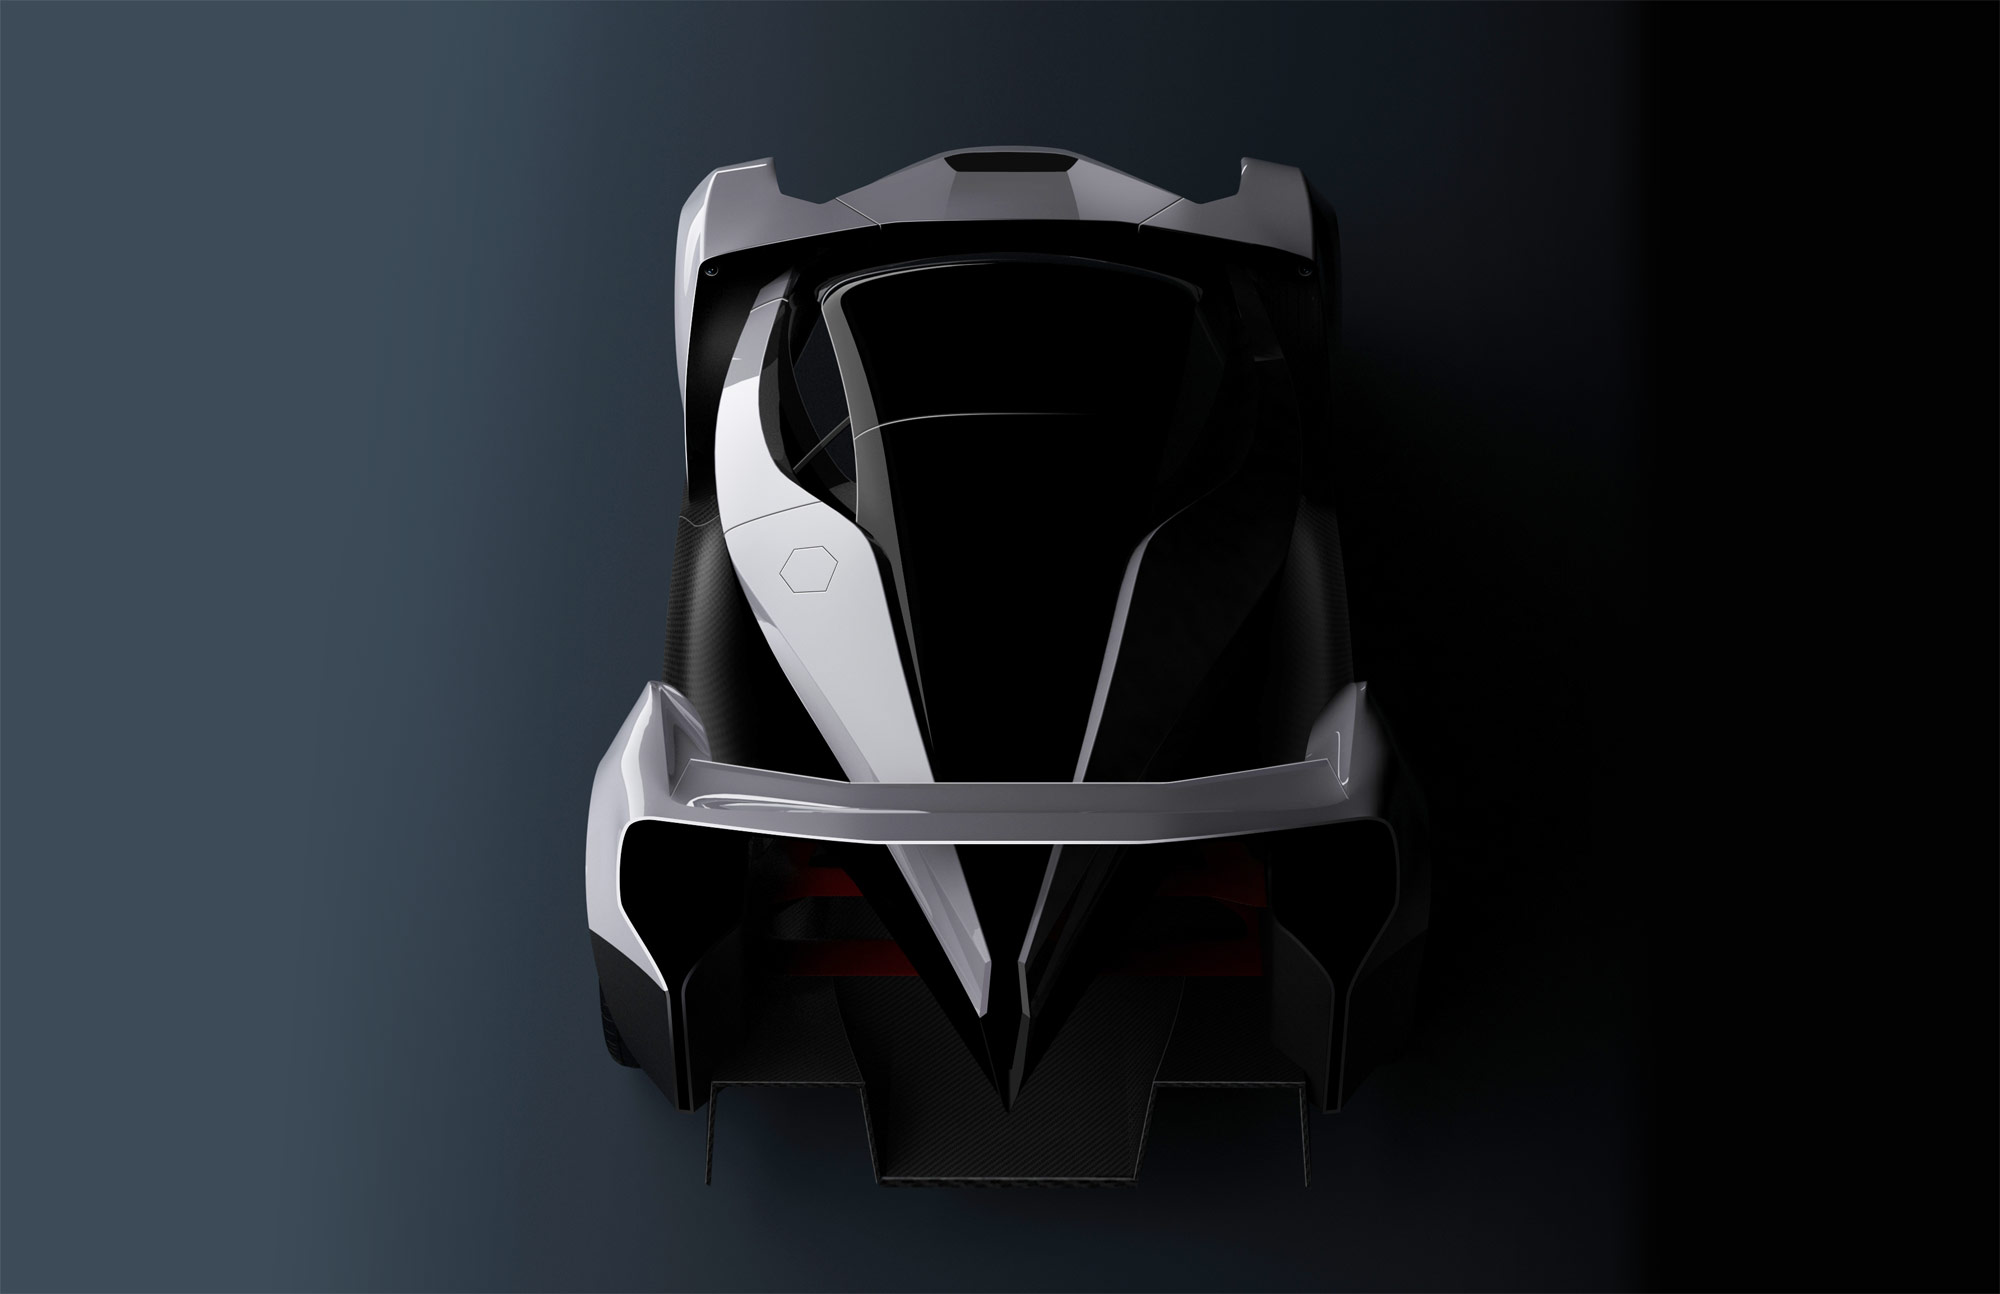 The all-electric Dendrobium concept is Singapore's first hypercar and it will be making its global debut at this March's Geneva Motor Show